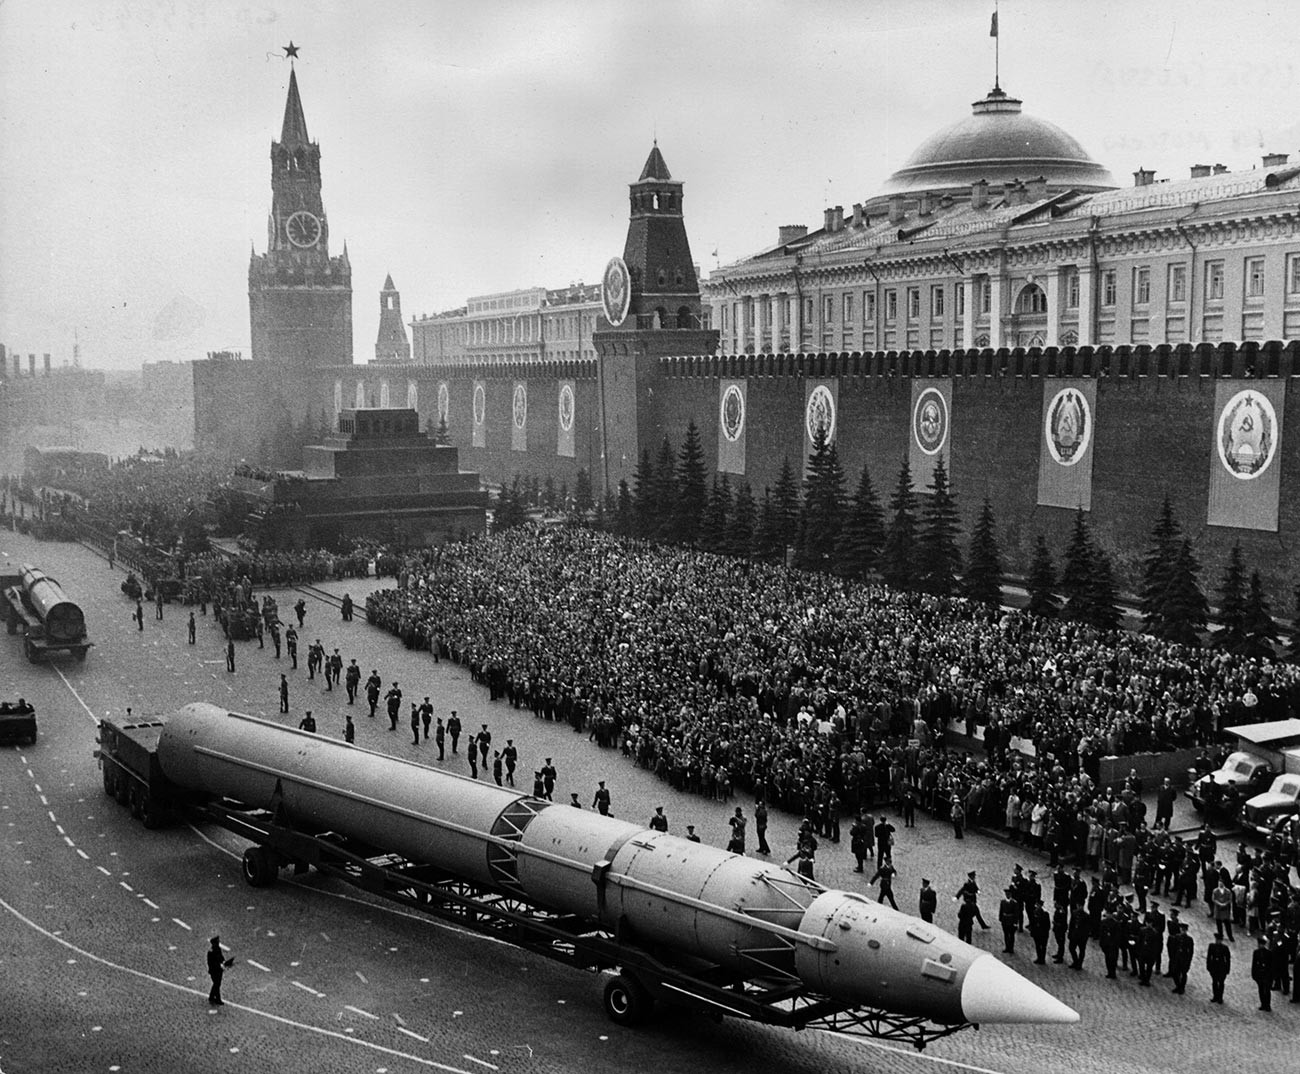 A Russian Intercontinental Missile crossing Red Square during the military parade in Moscow marking the 20th Anniversary of the end of the war in Europe.